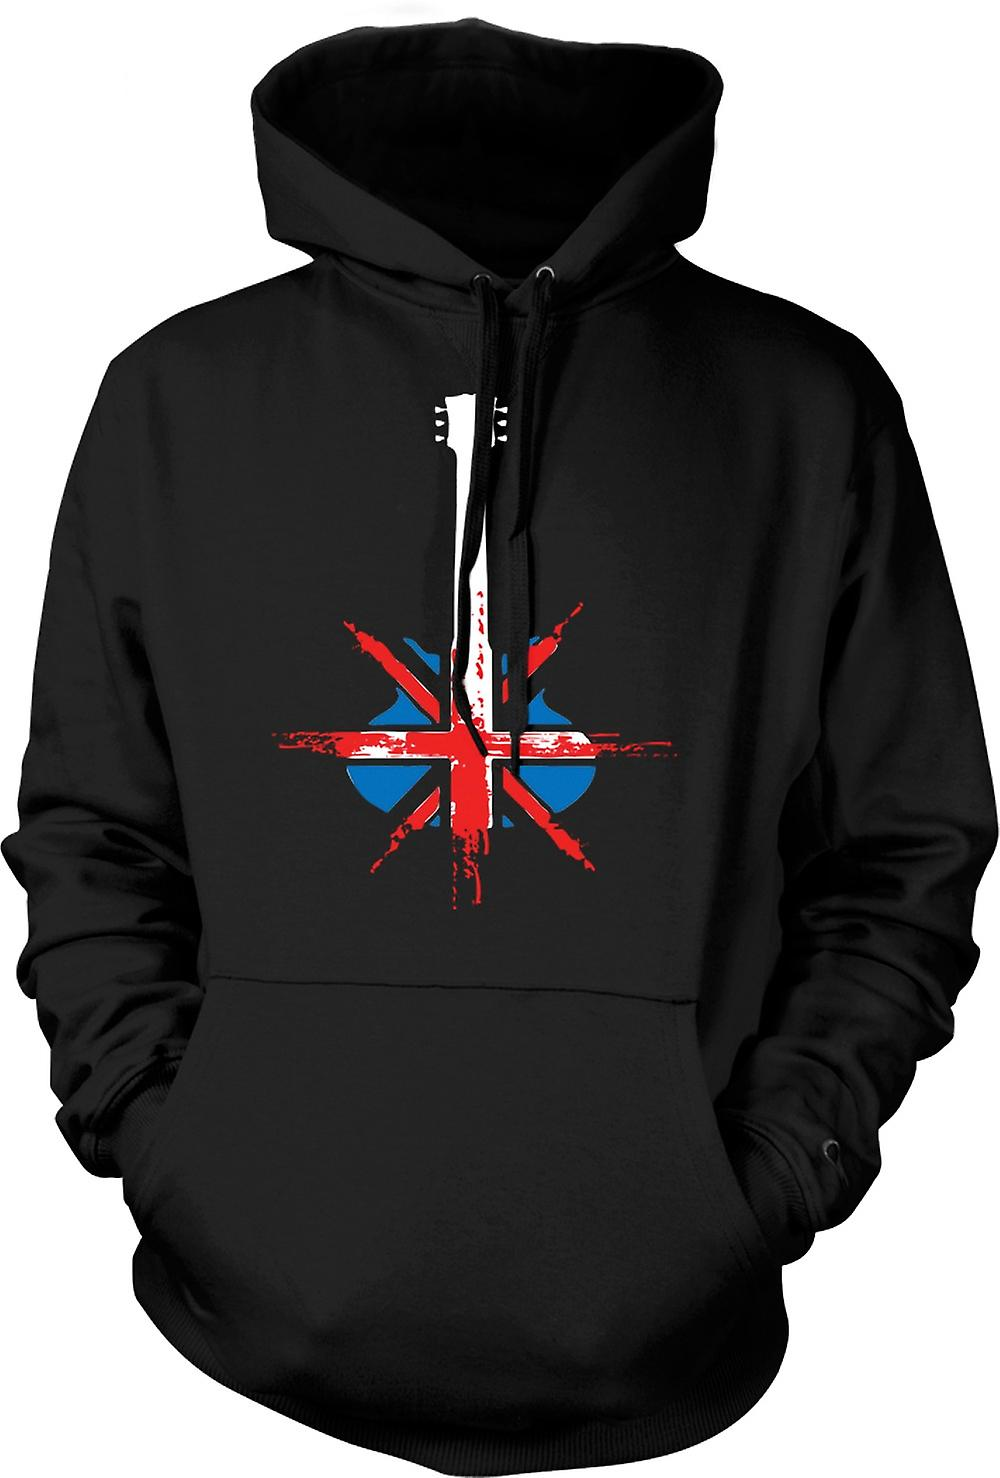 Mens Hoodie - Gibson Guitar UK - Pop Art - musica